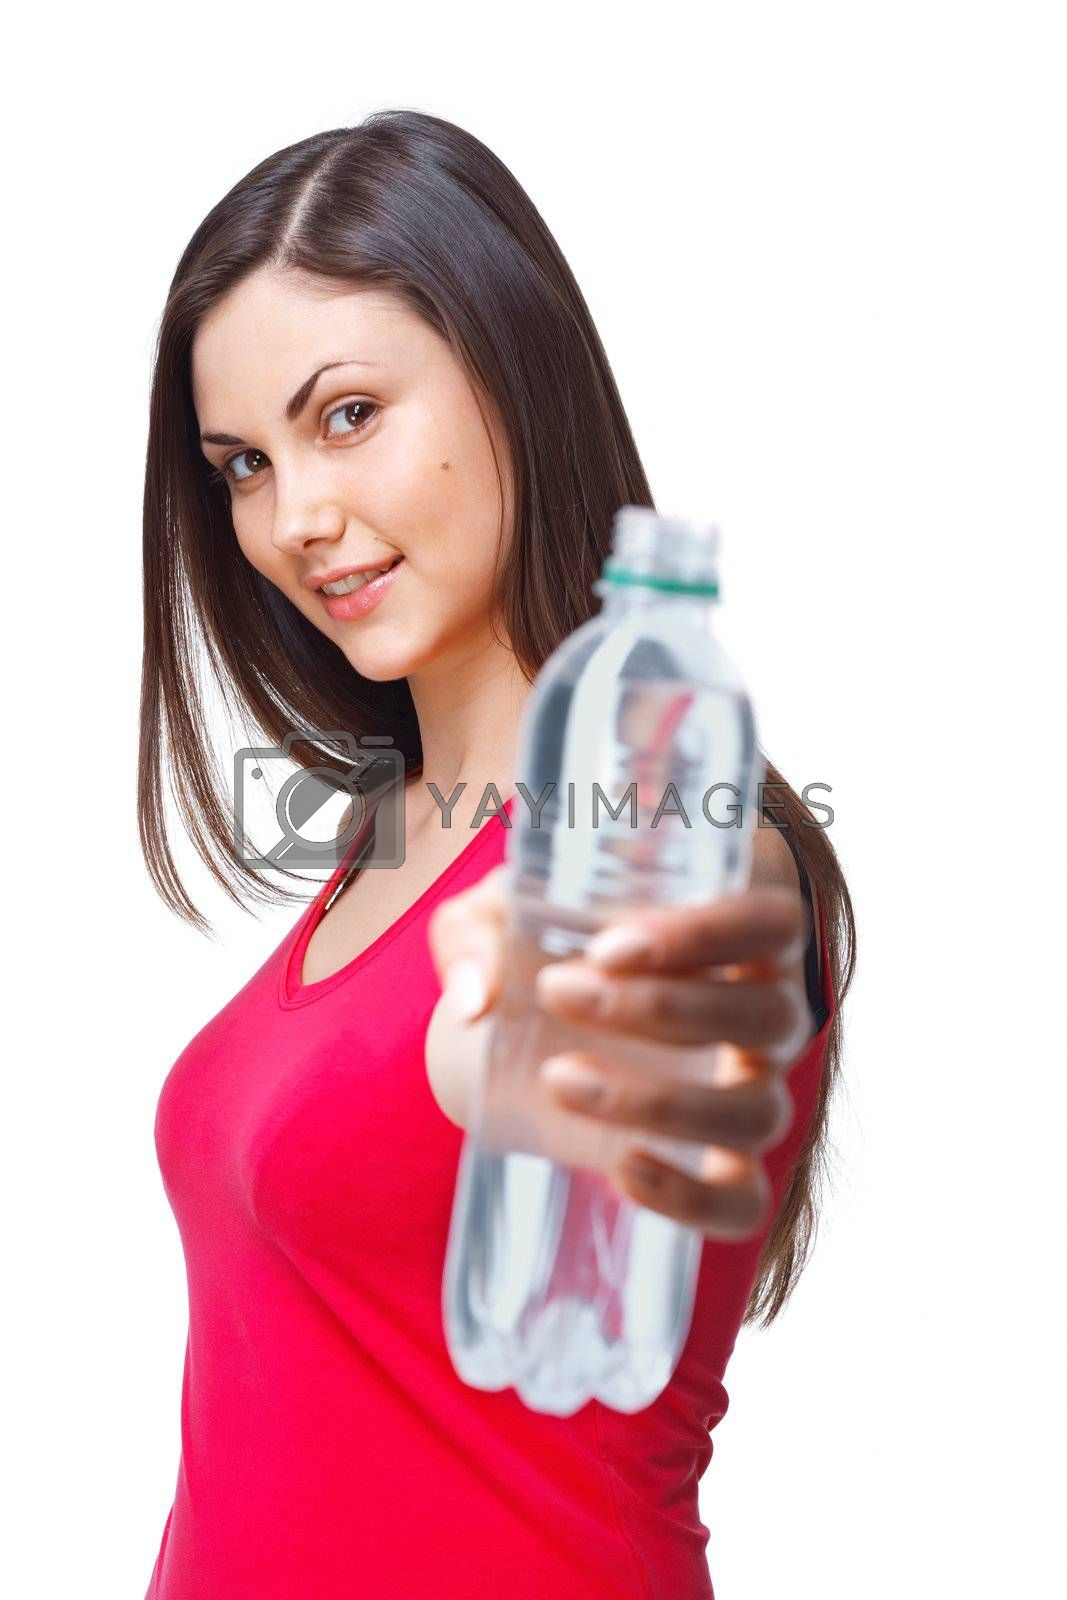 A close up portrait of a young woman bottle of water